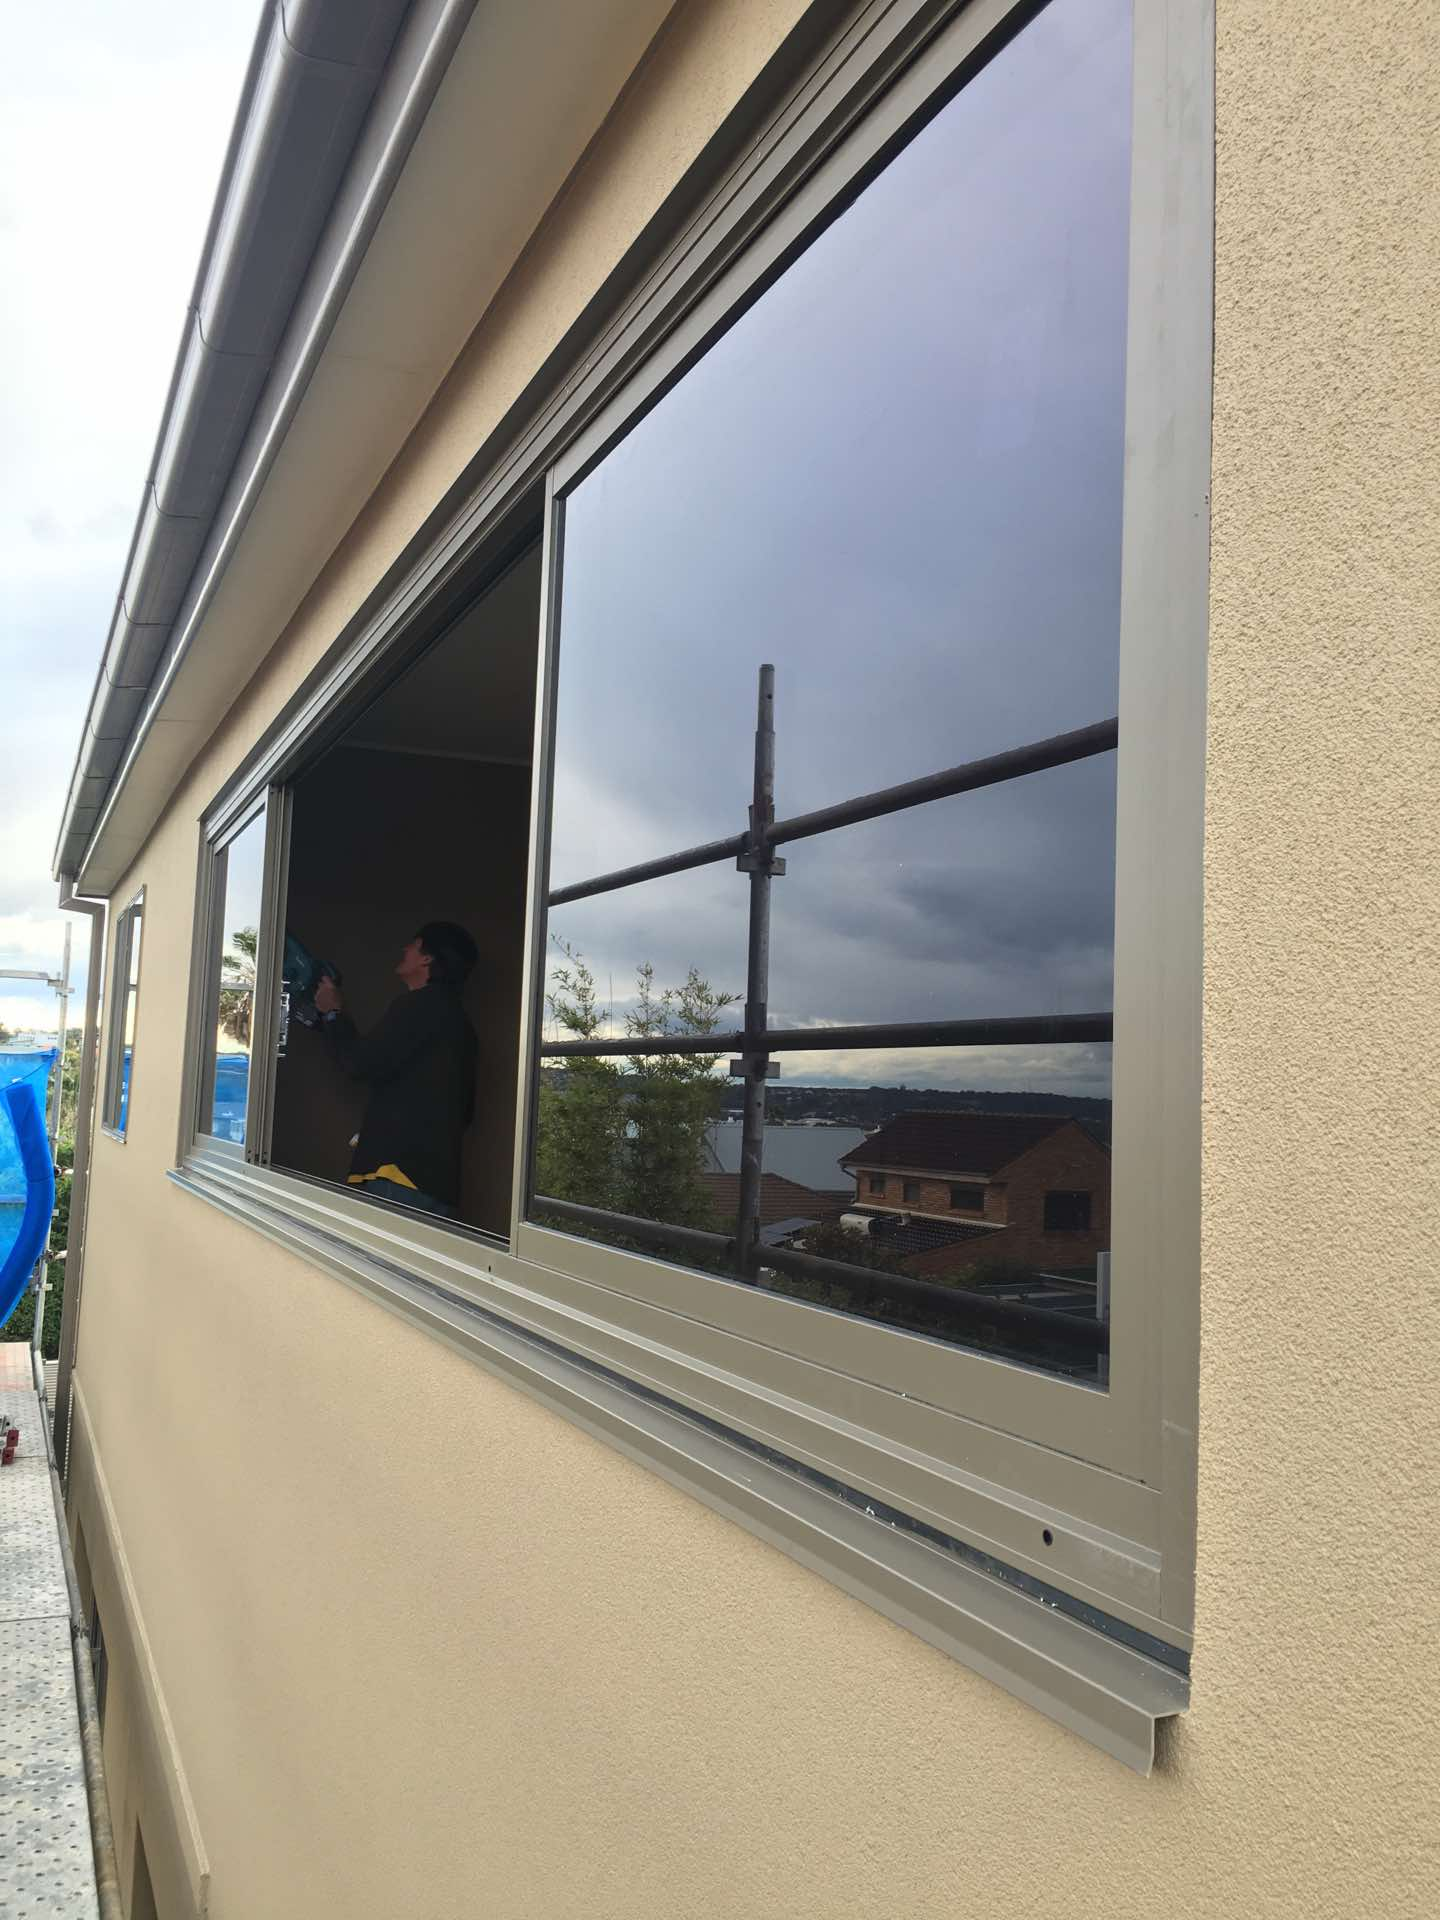 5.3m window installation to close up a covered verandah and make it watertight and useable all year round Dee Why, NSW